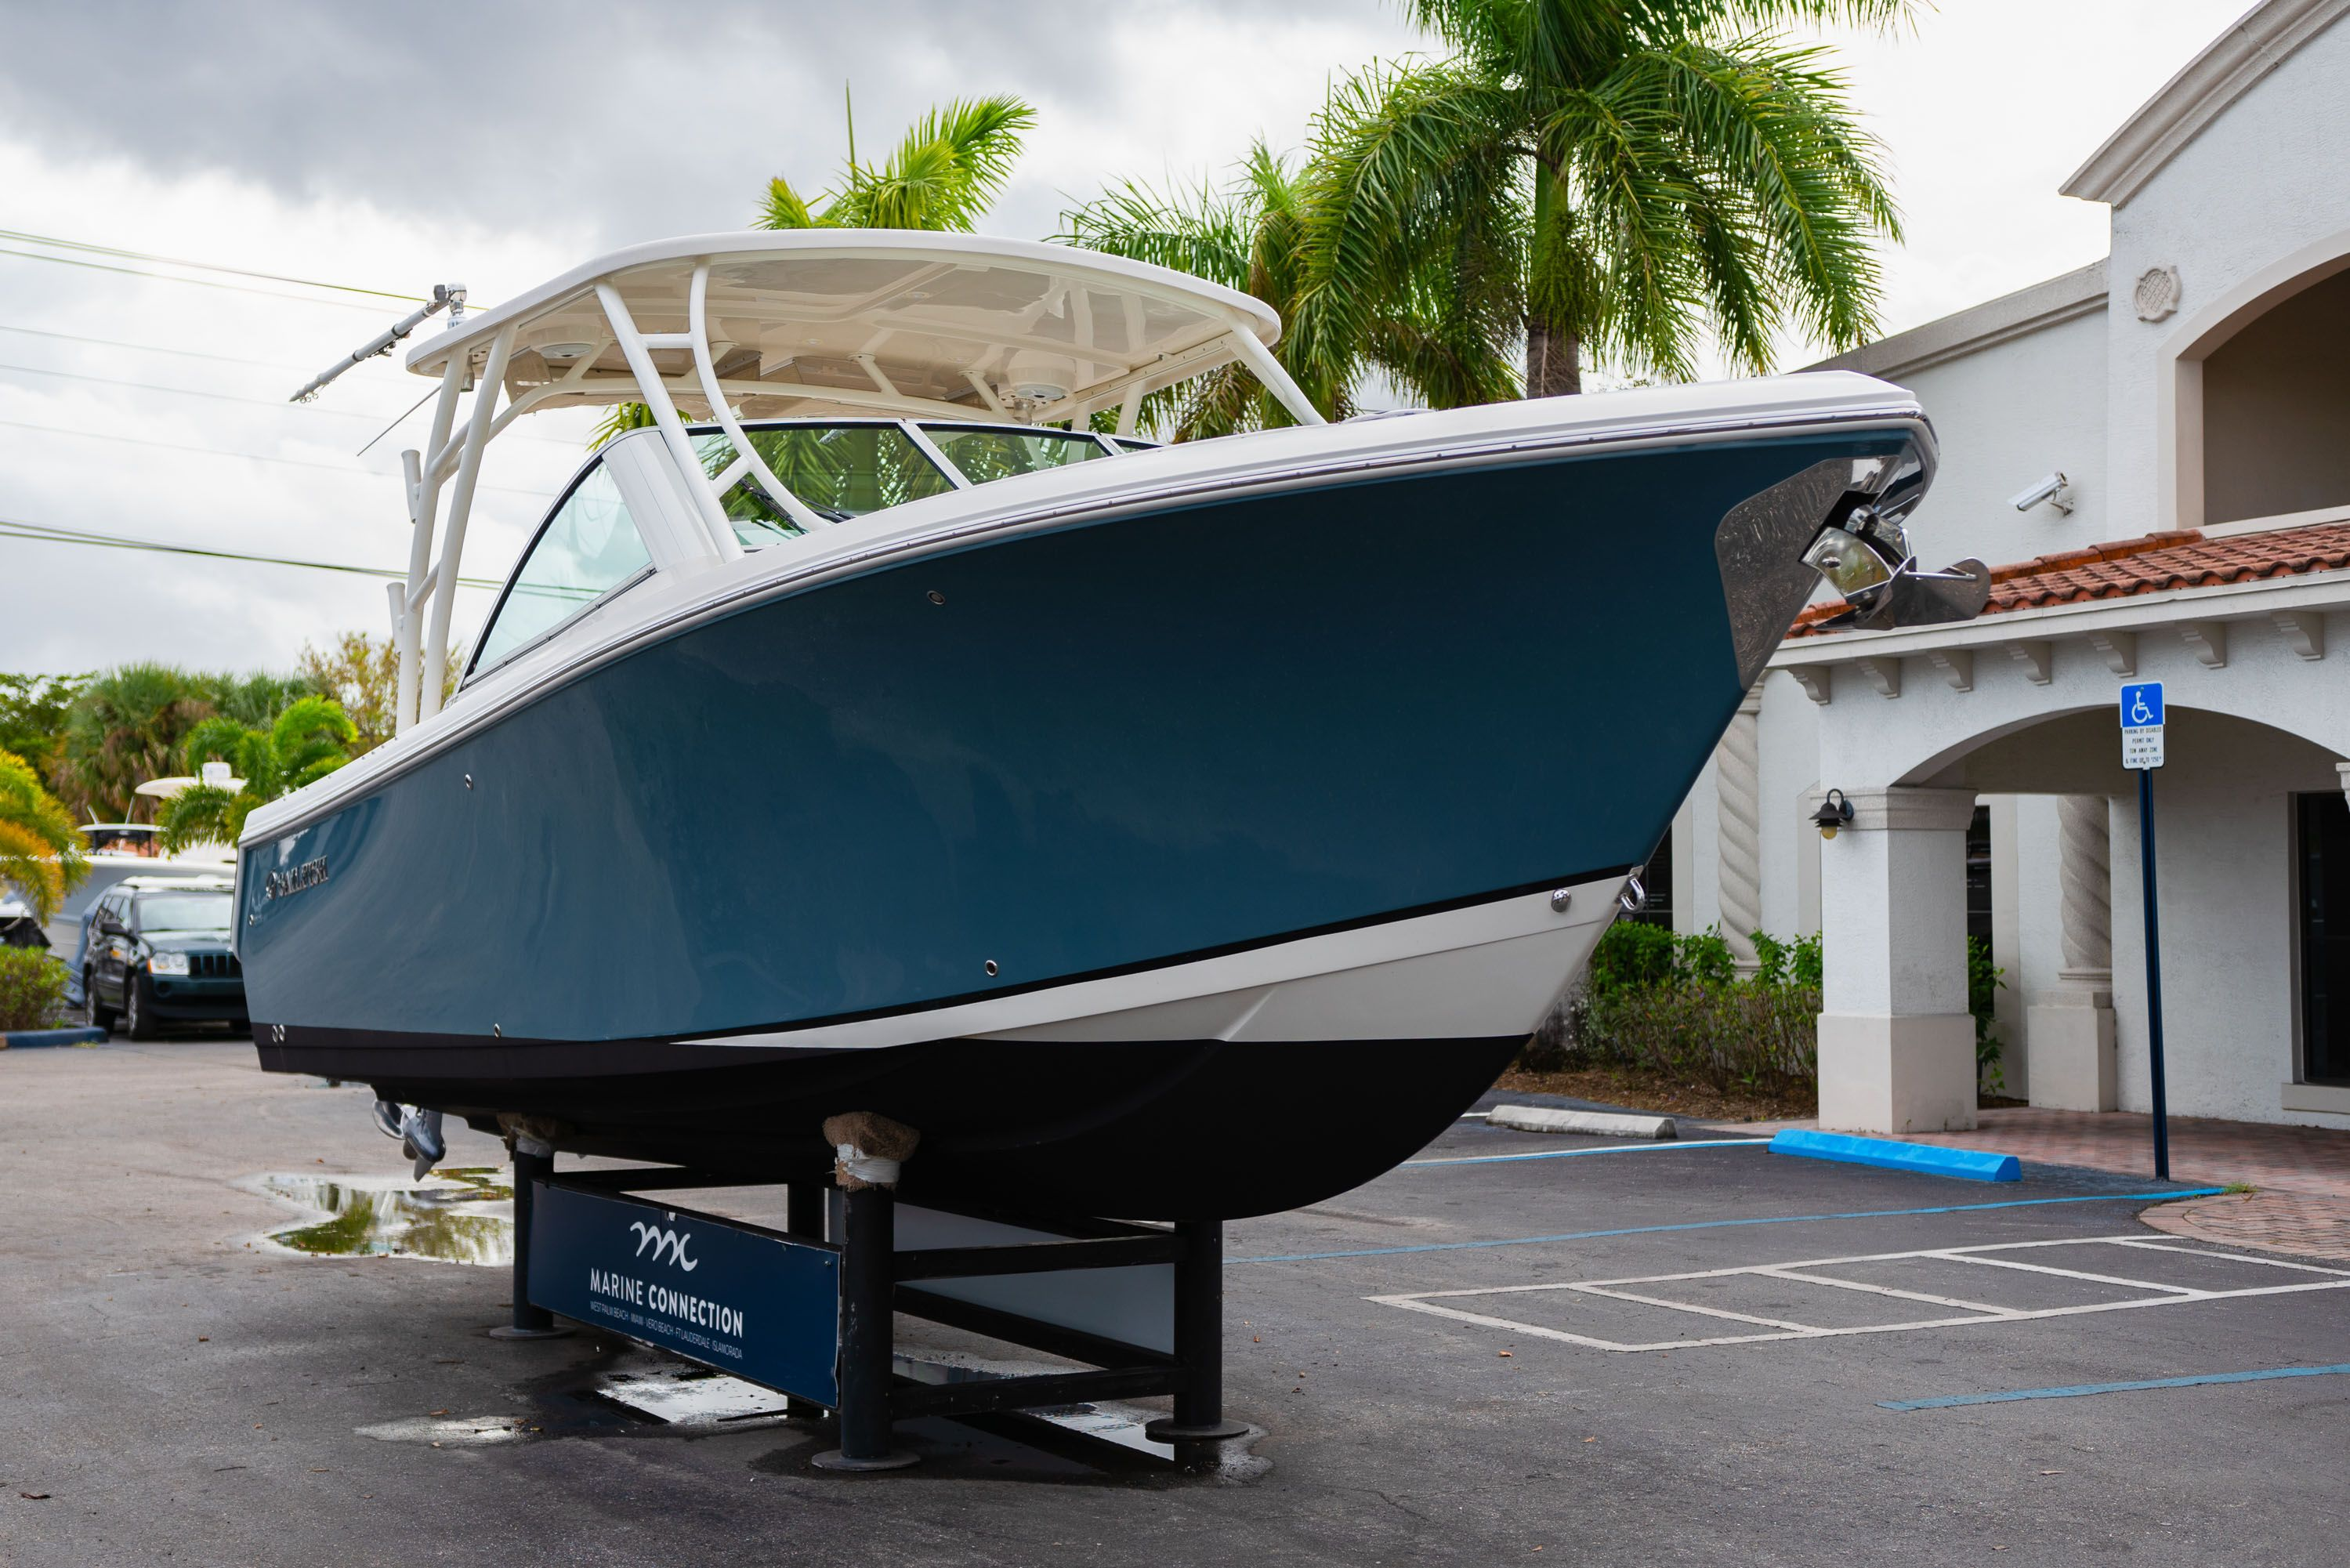 Thumbnail 1 for Used 2017 Sailfish 275 Dual Console boat for sale in West Palm Beach, FL